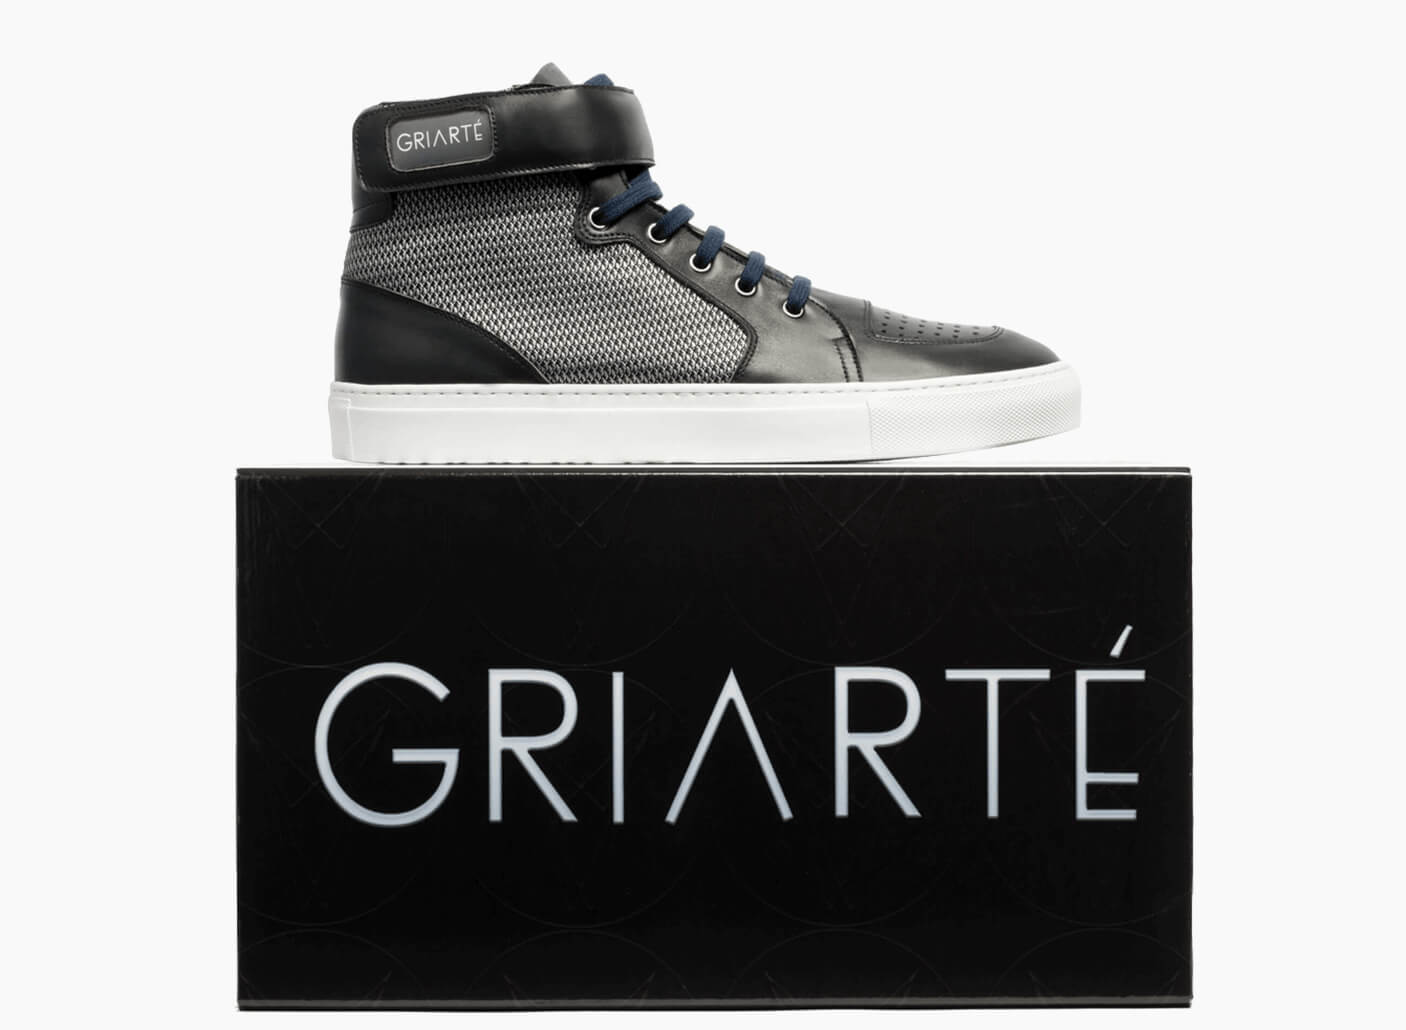 Griarte customized made in Italy sneakers by Caleb Smith